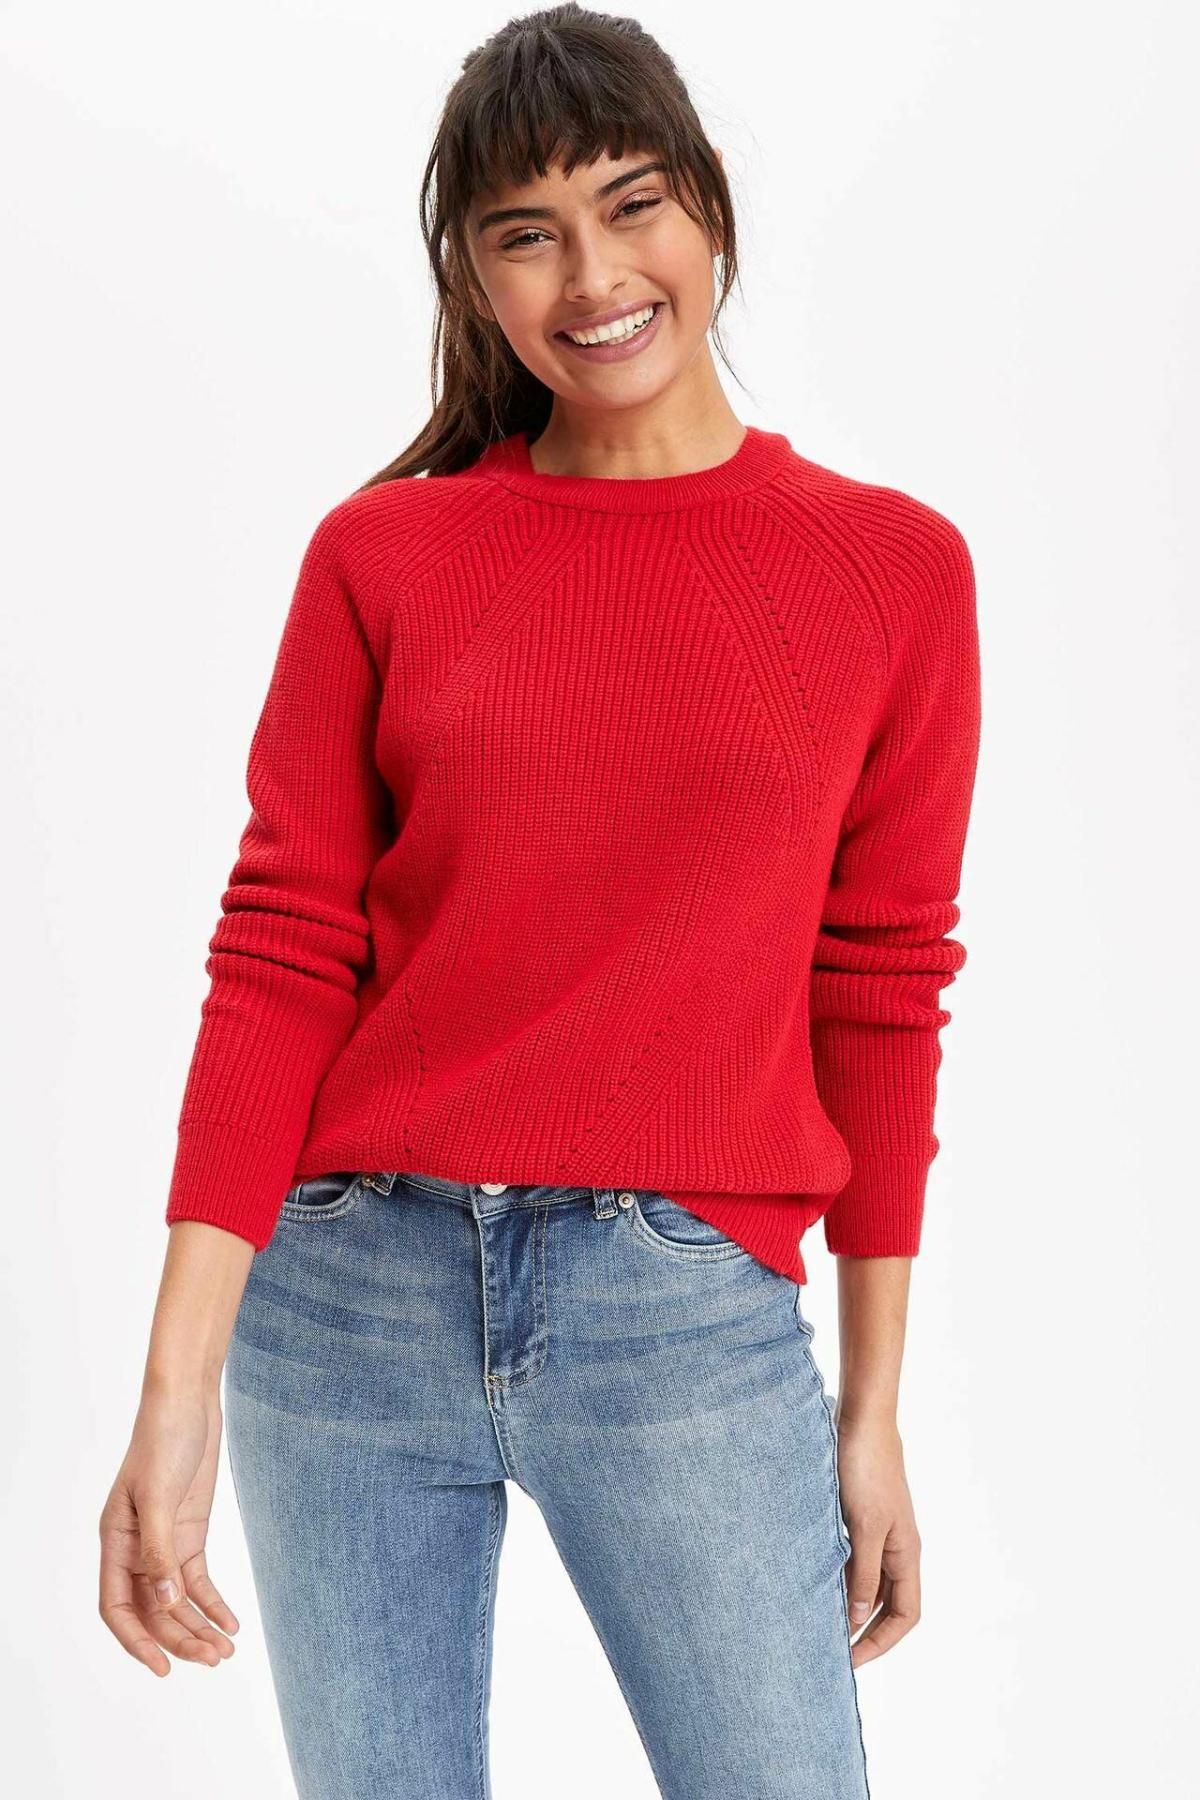 DeFacto Woman Crew Pullovers Loose Long Sleeve Pure Color Woman Casual Fashion Simple Autumn Tops New -H6905AZ19WN